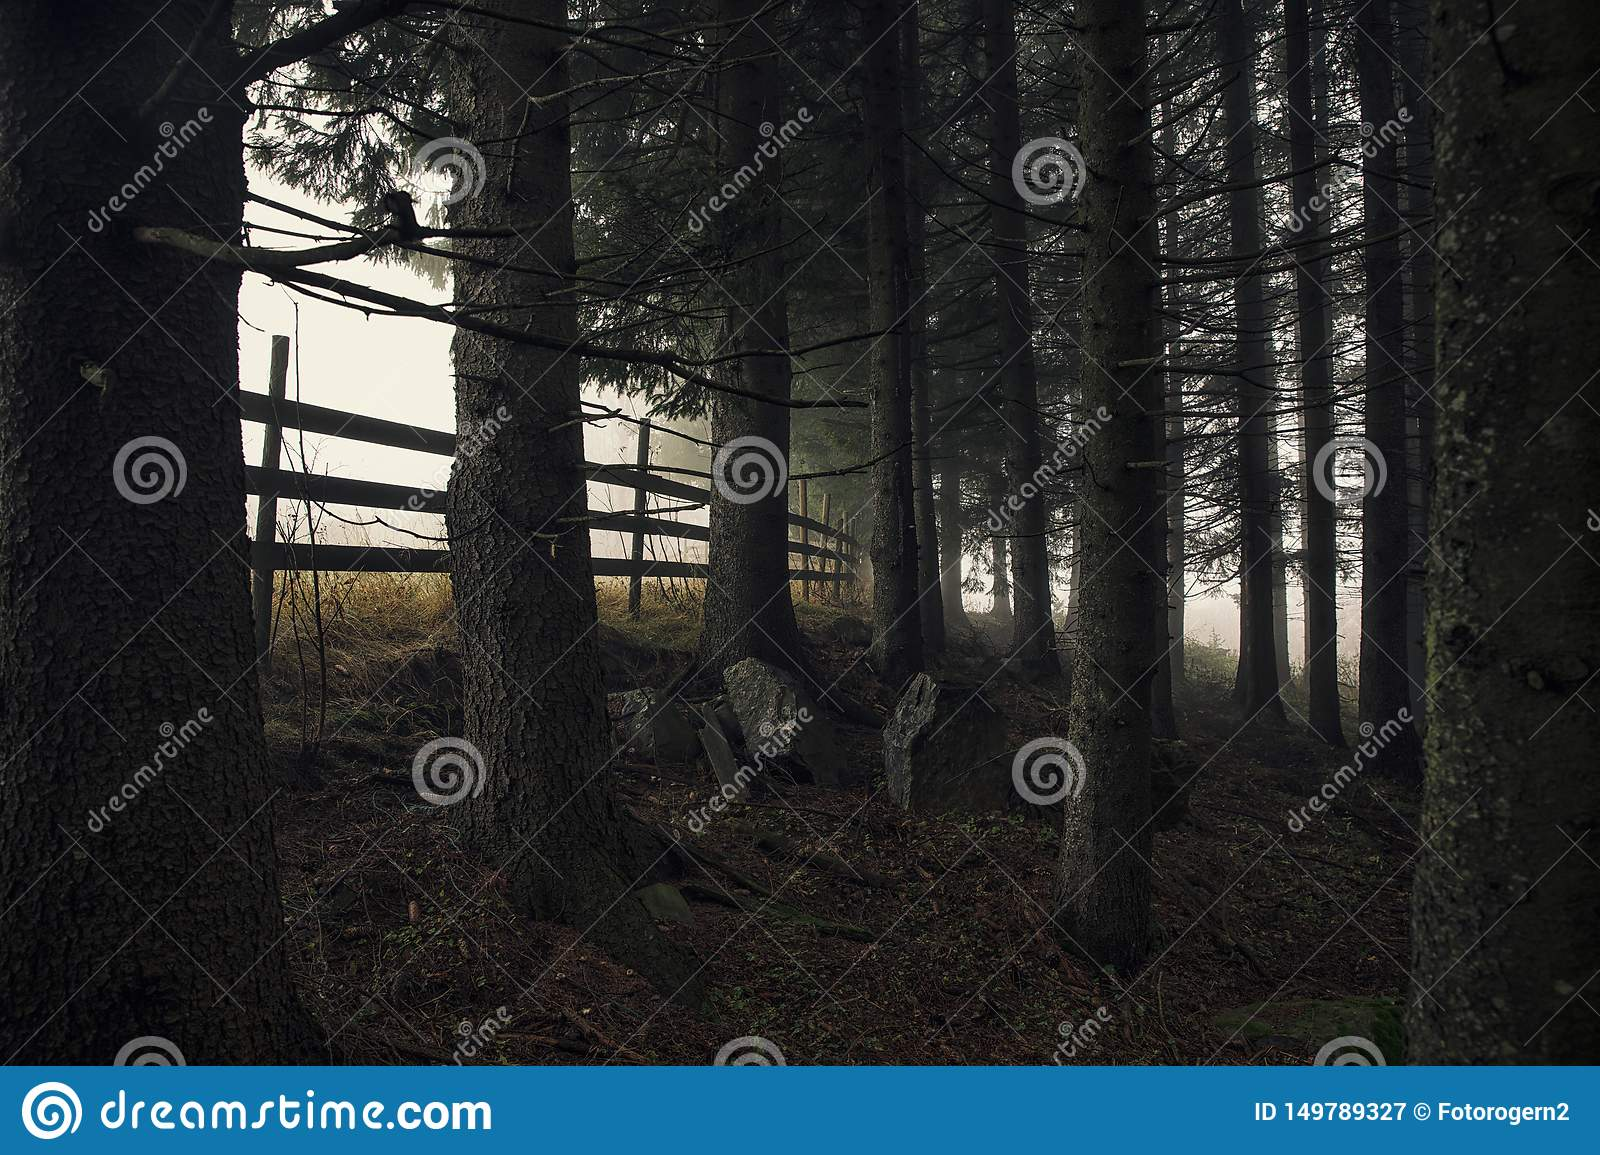 A dark forest scene with fog